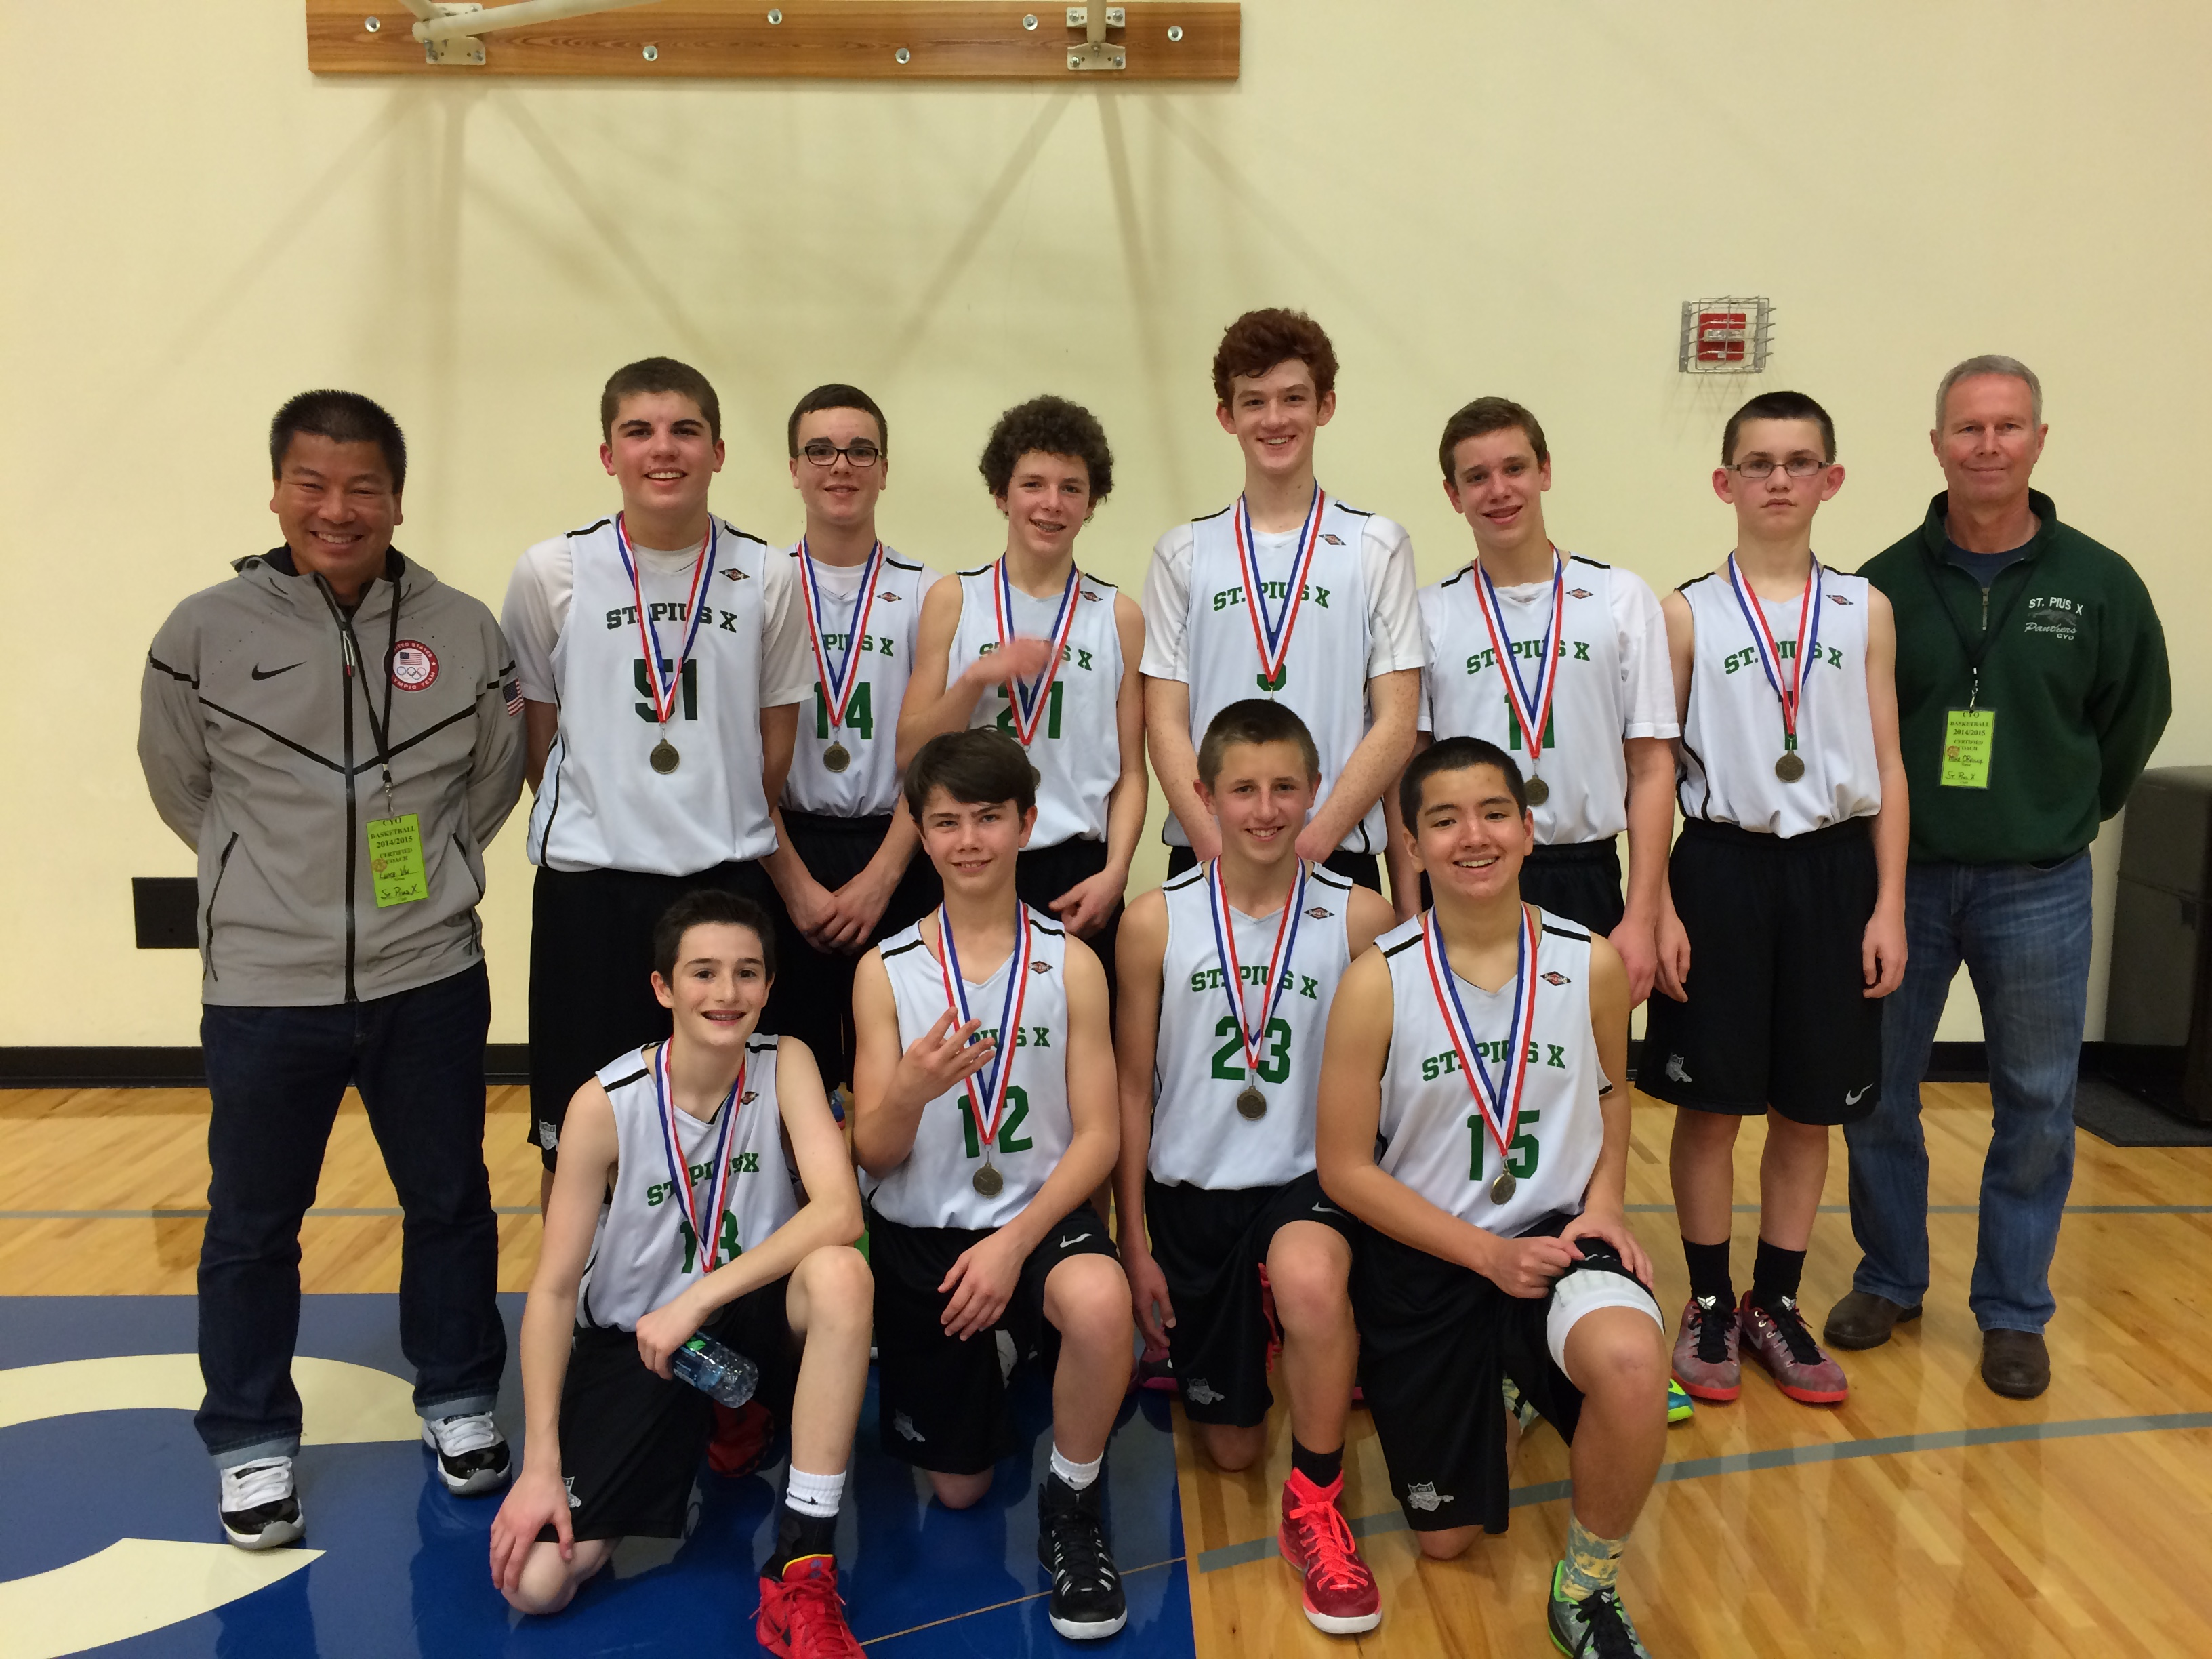 St. PIus X takes third place in the 2015 CYO City Basketball Tournament.